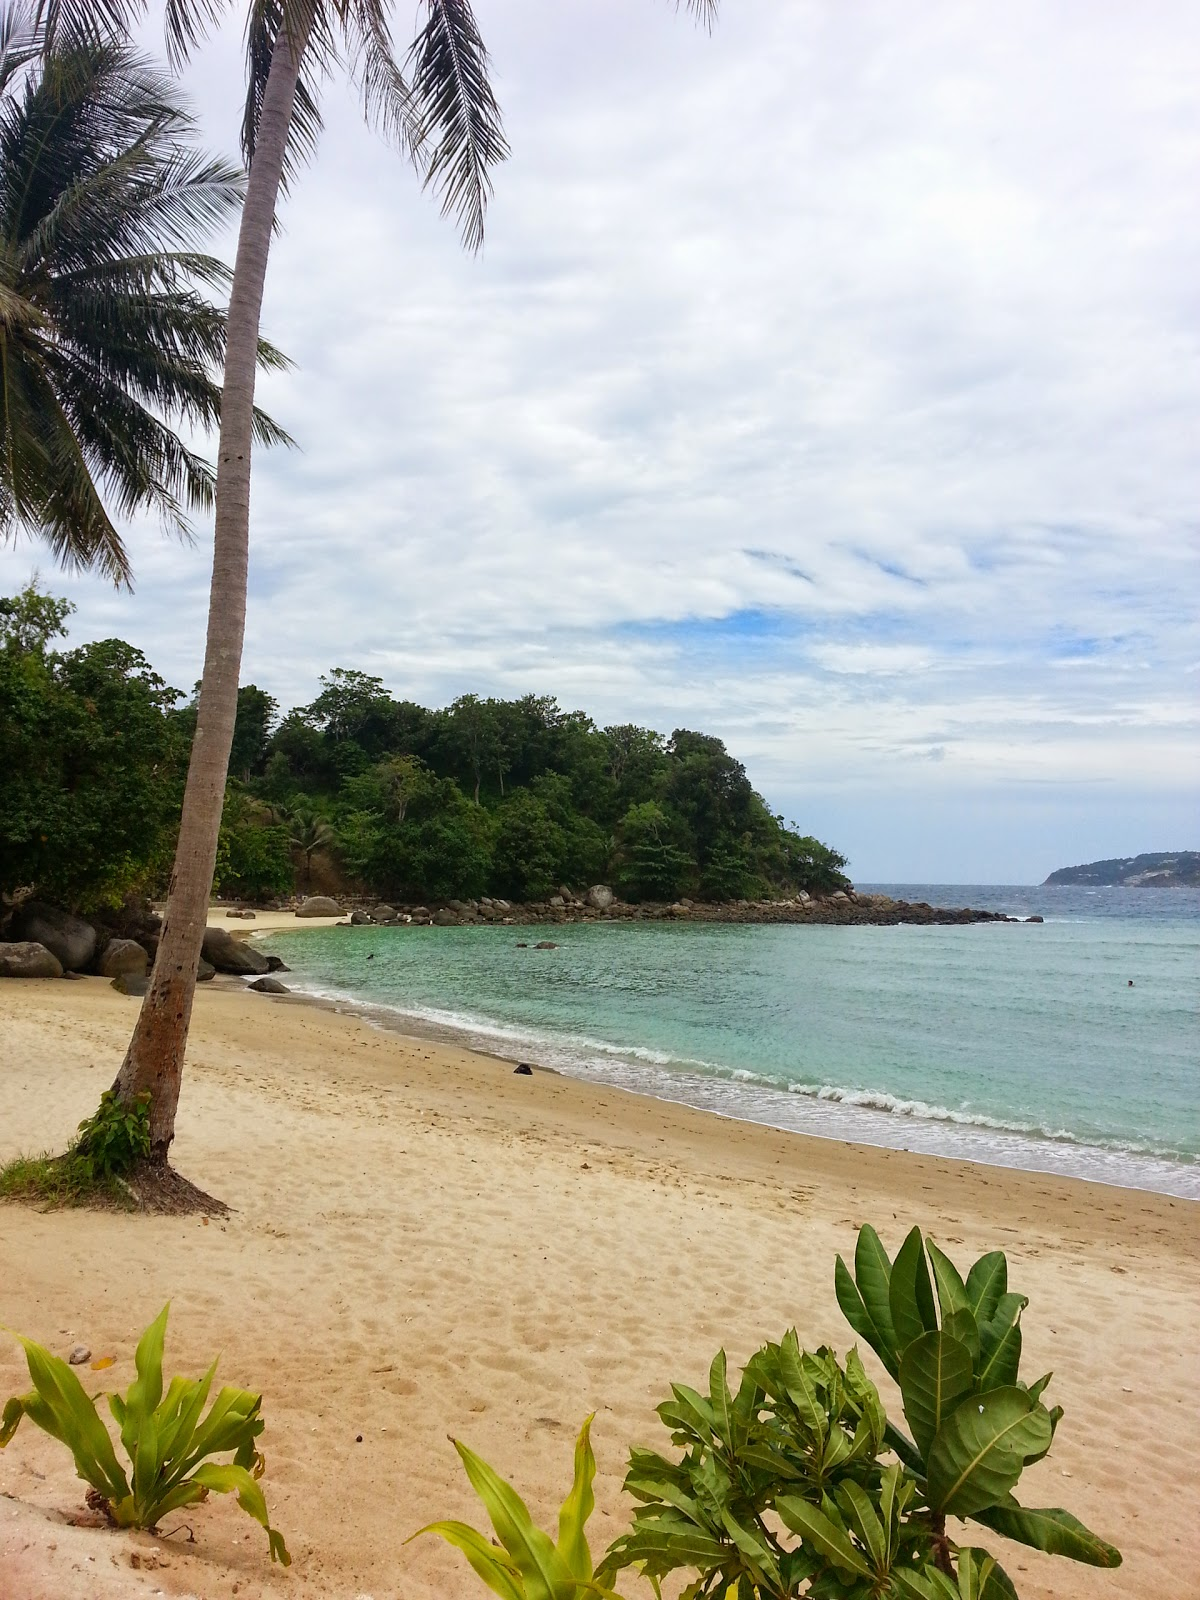 Image of Paradise beach - Patong